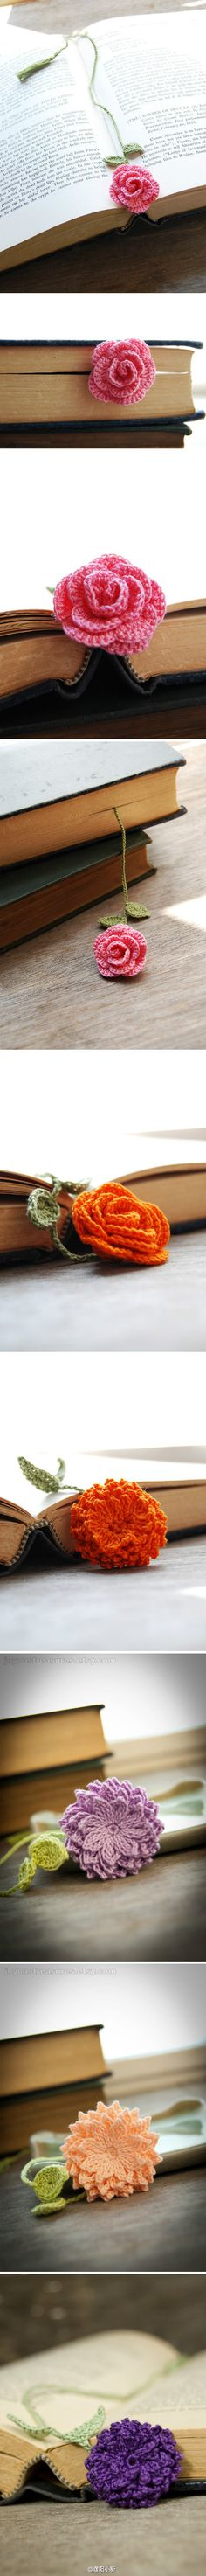 Pretty bookmarks - crochet flowers. this is so cute :)